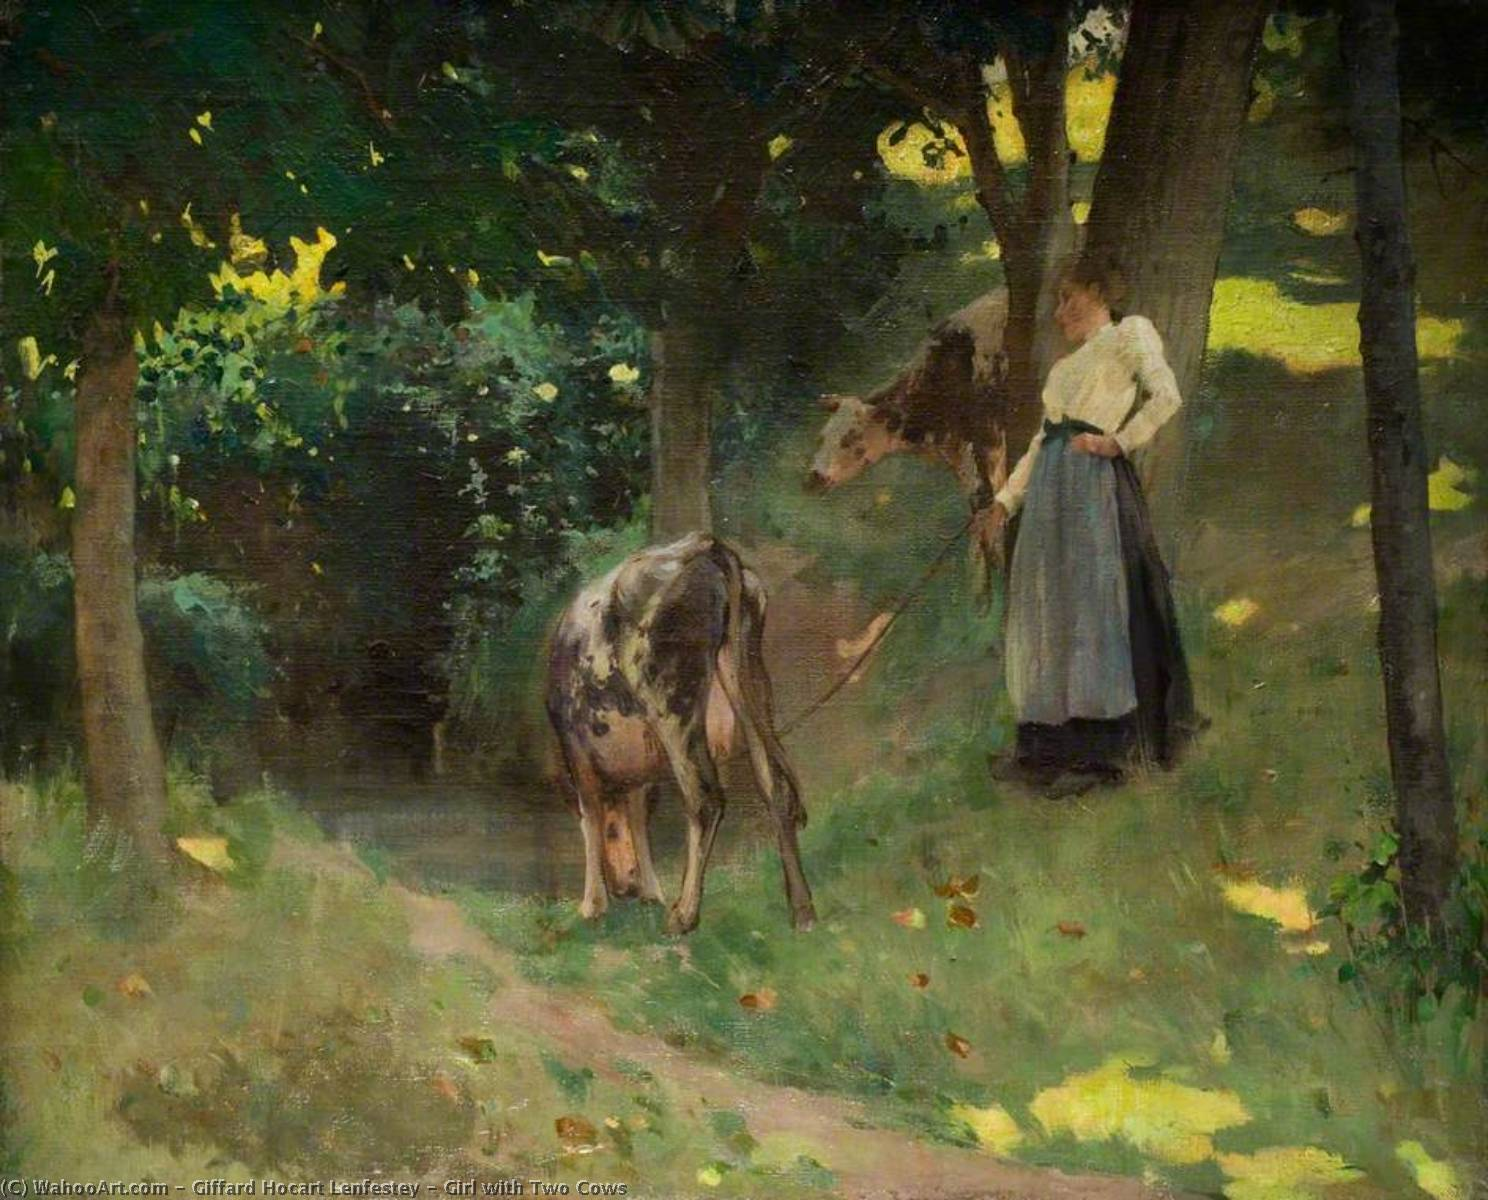 Girl with Two Cows by Giffard Hocart Lenfestey | Museum Art Reproductions Giffard Hocart Lenfestey | ArtsDot.com